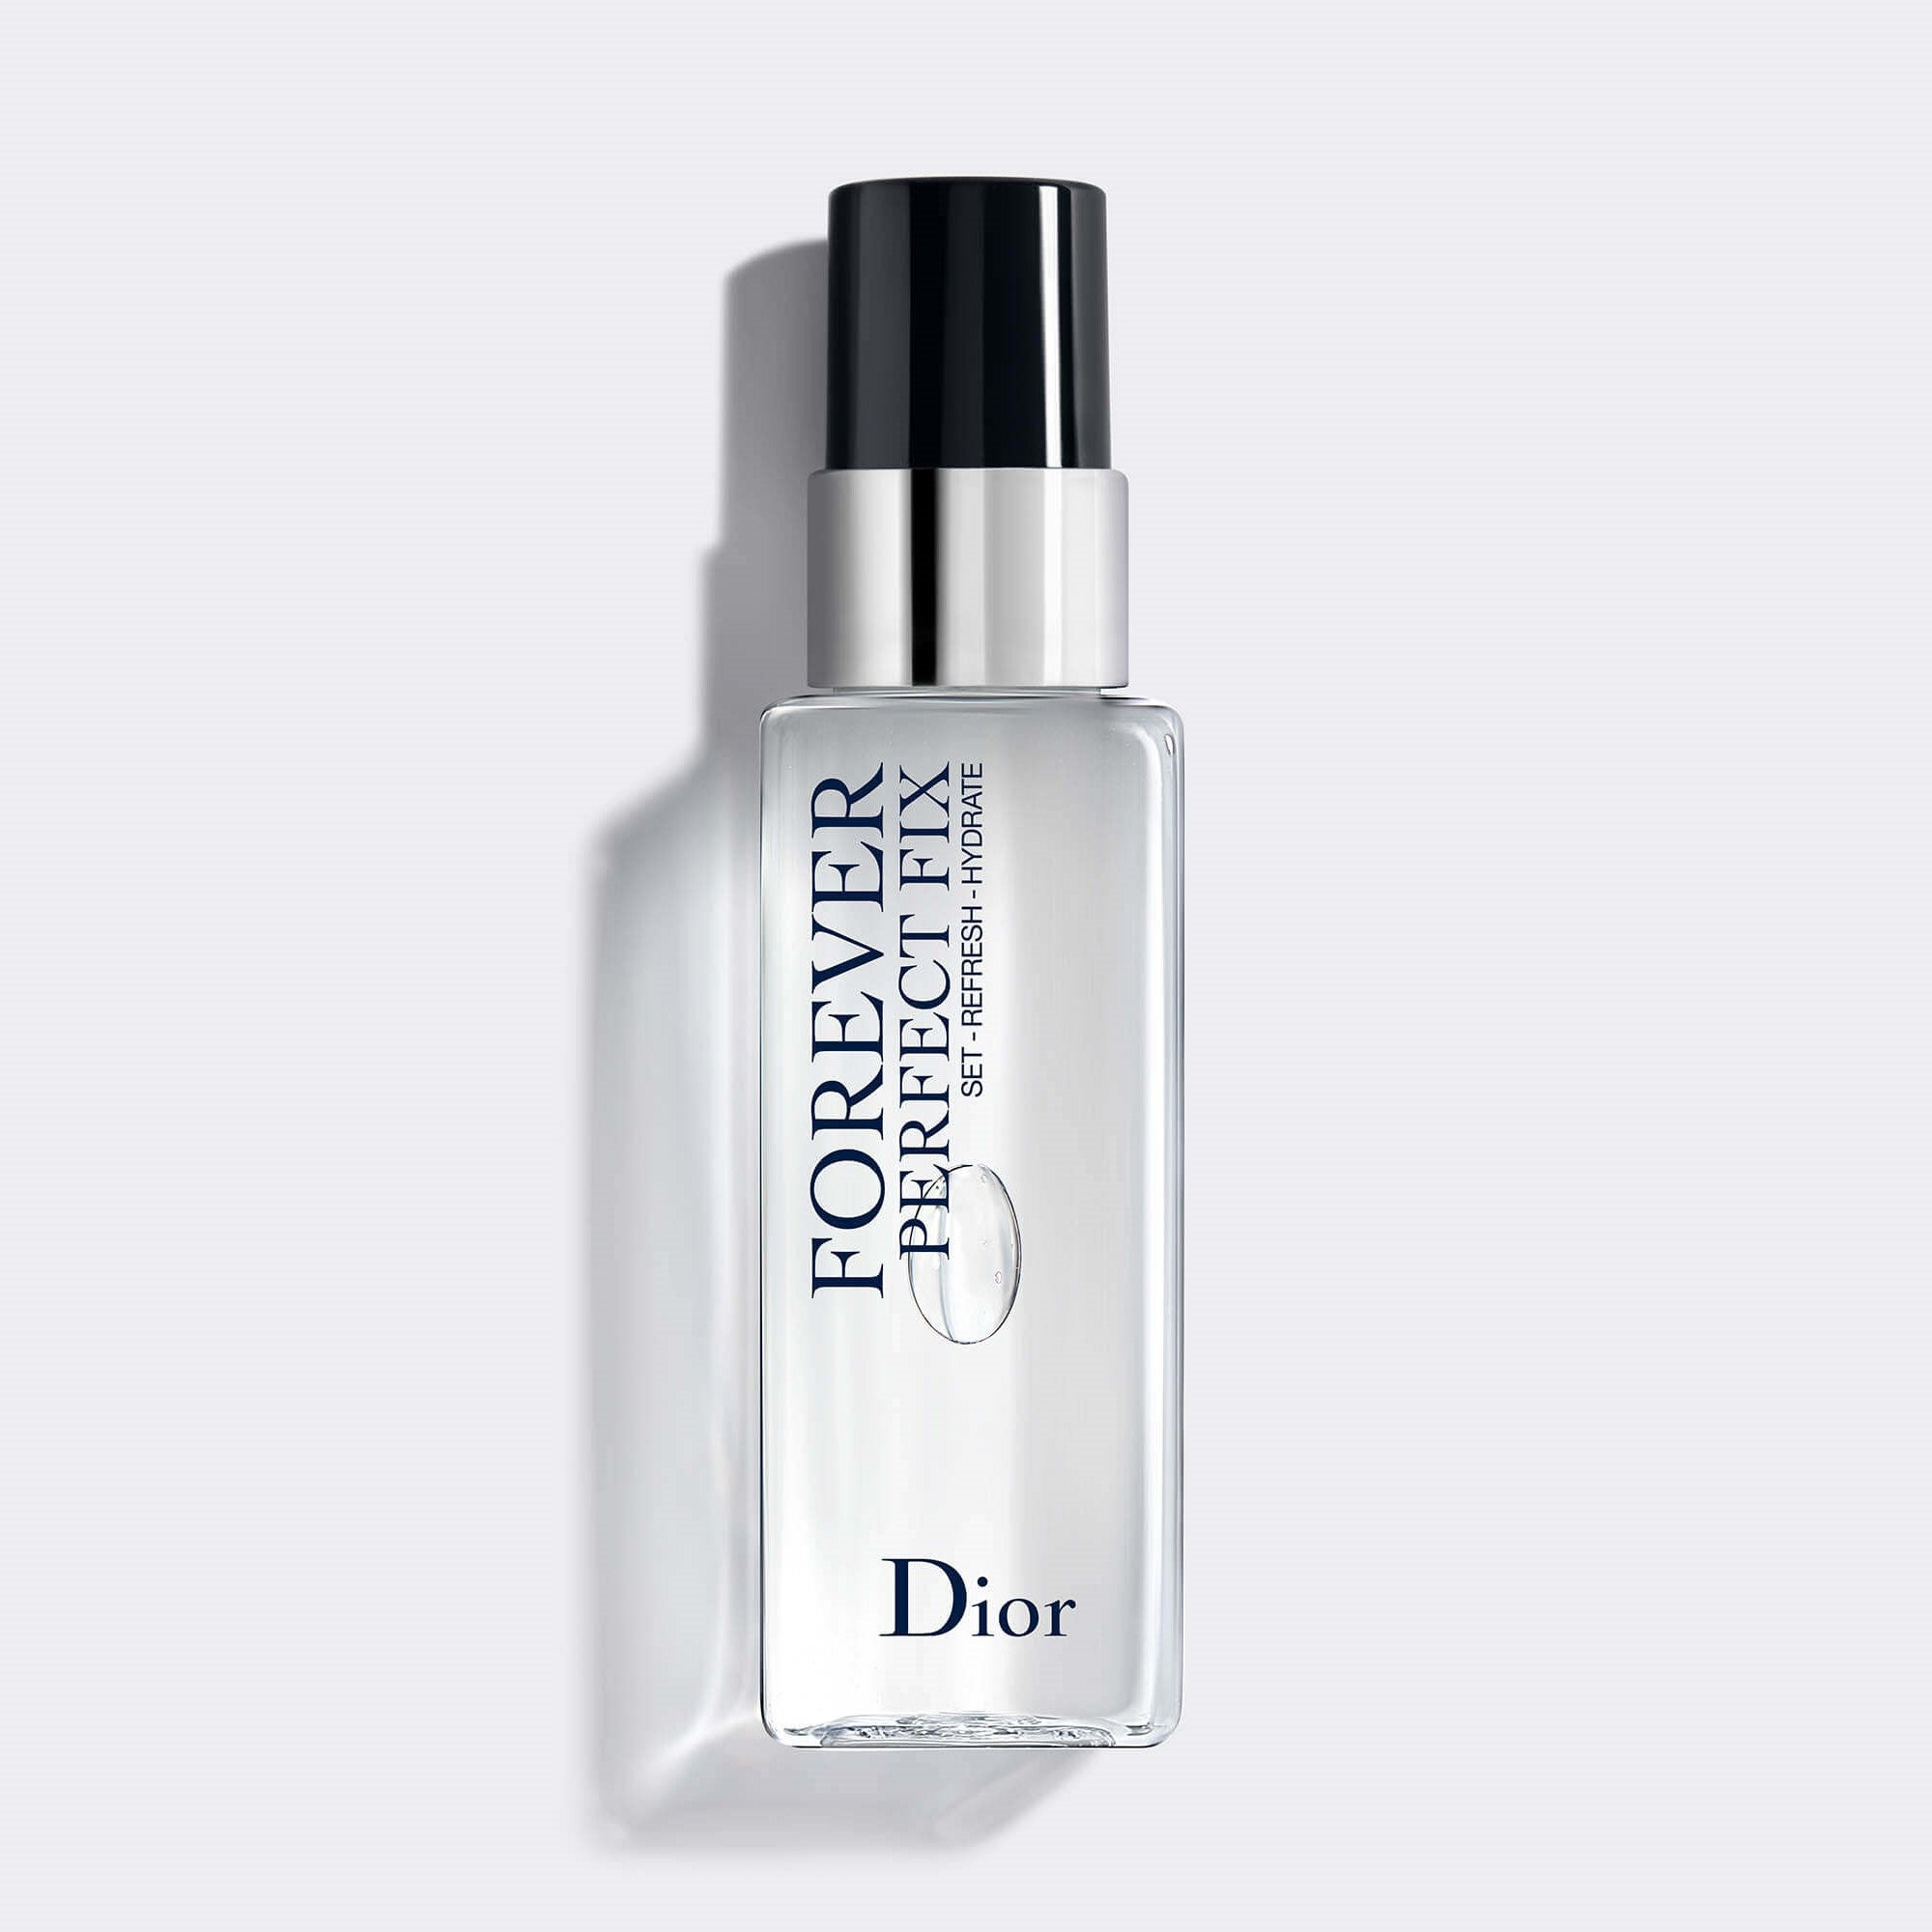 DIOR FOREVER PERFECT FIX ~ Face Mist - Makeup Setting Spray - Longwear & Instant Hydration